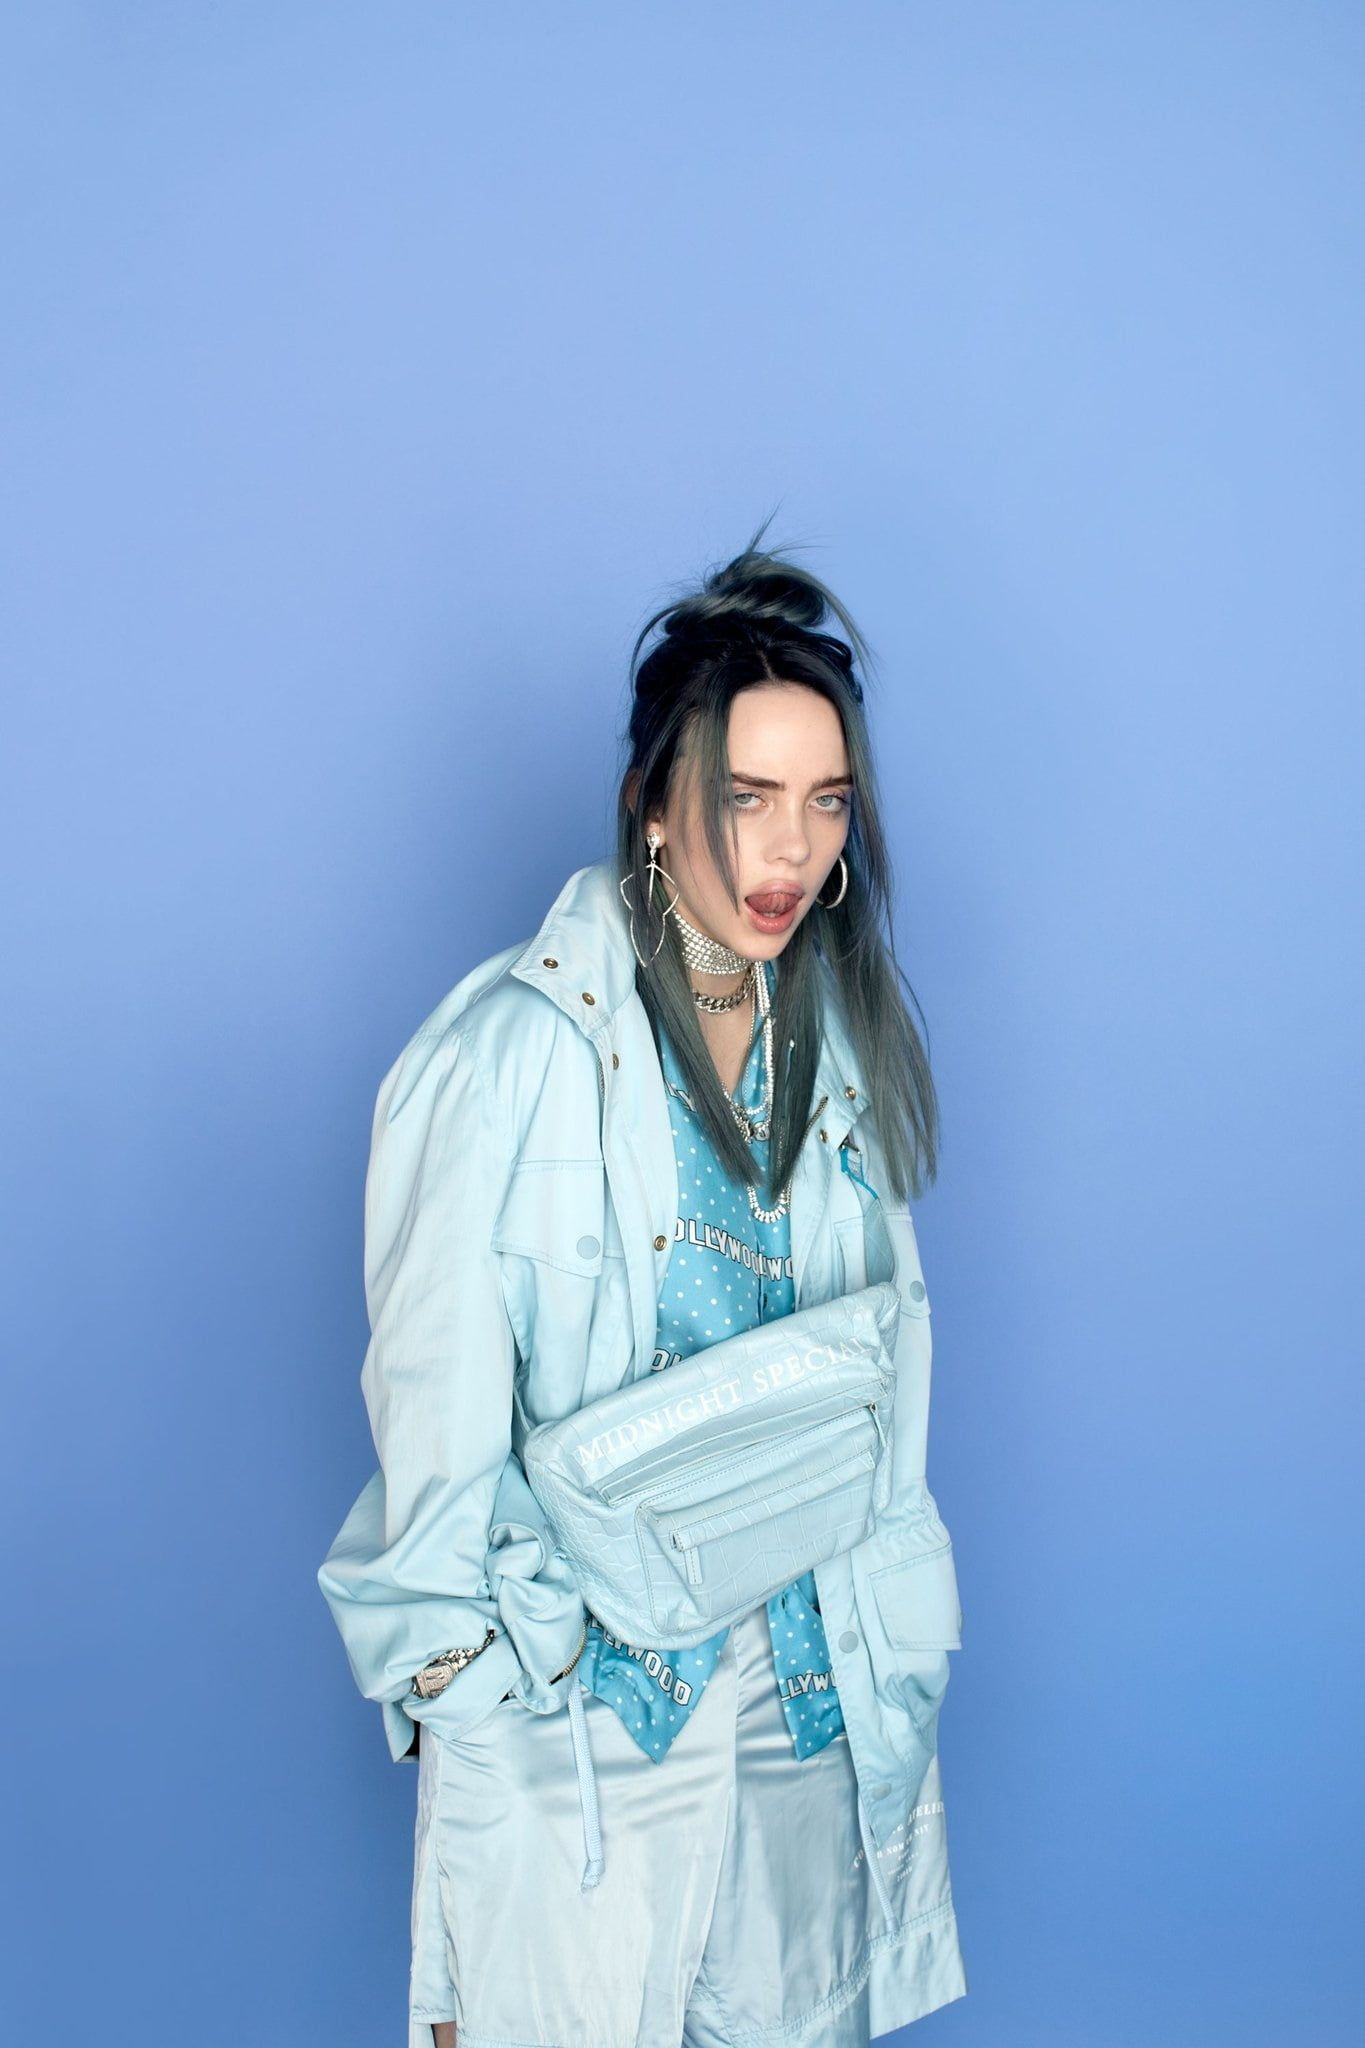 Billie Eilish Music Simple Background Dark Hair Tongue Out Women 1080p Wallpaper Hdwallpaper In 2020 Billie Eilish Billie Dark Hair